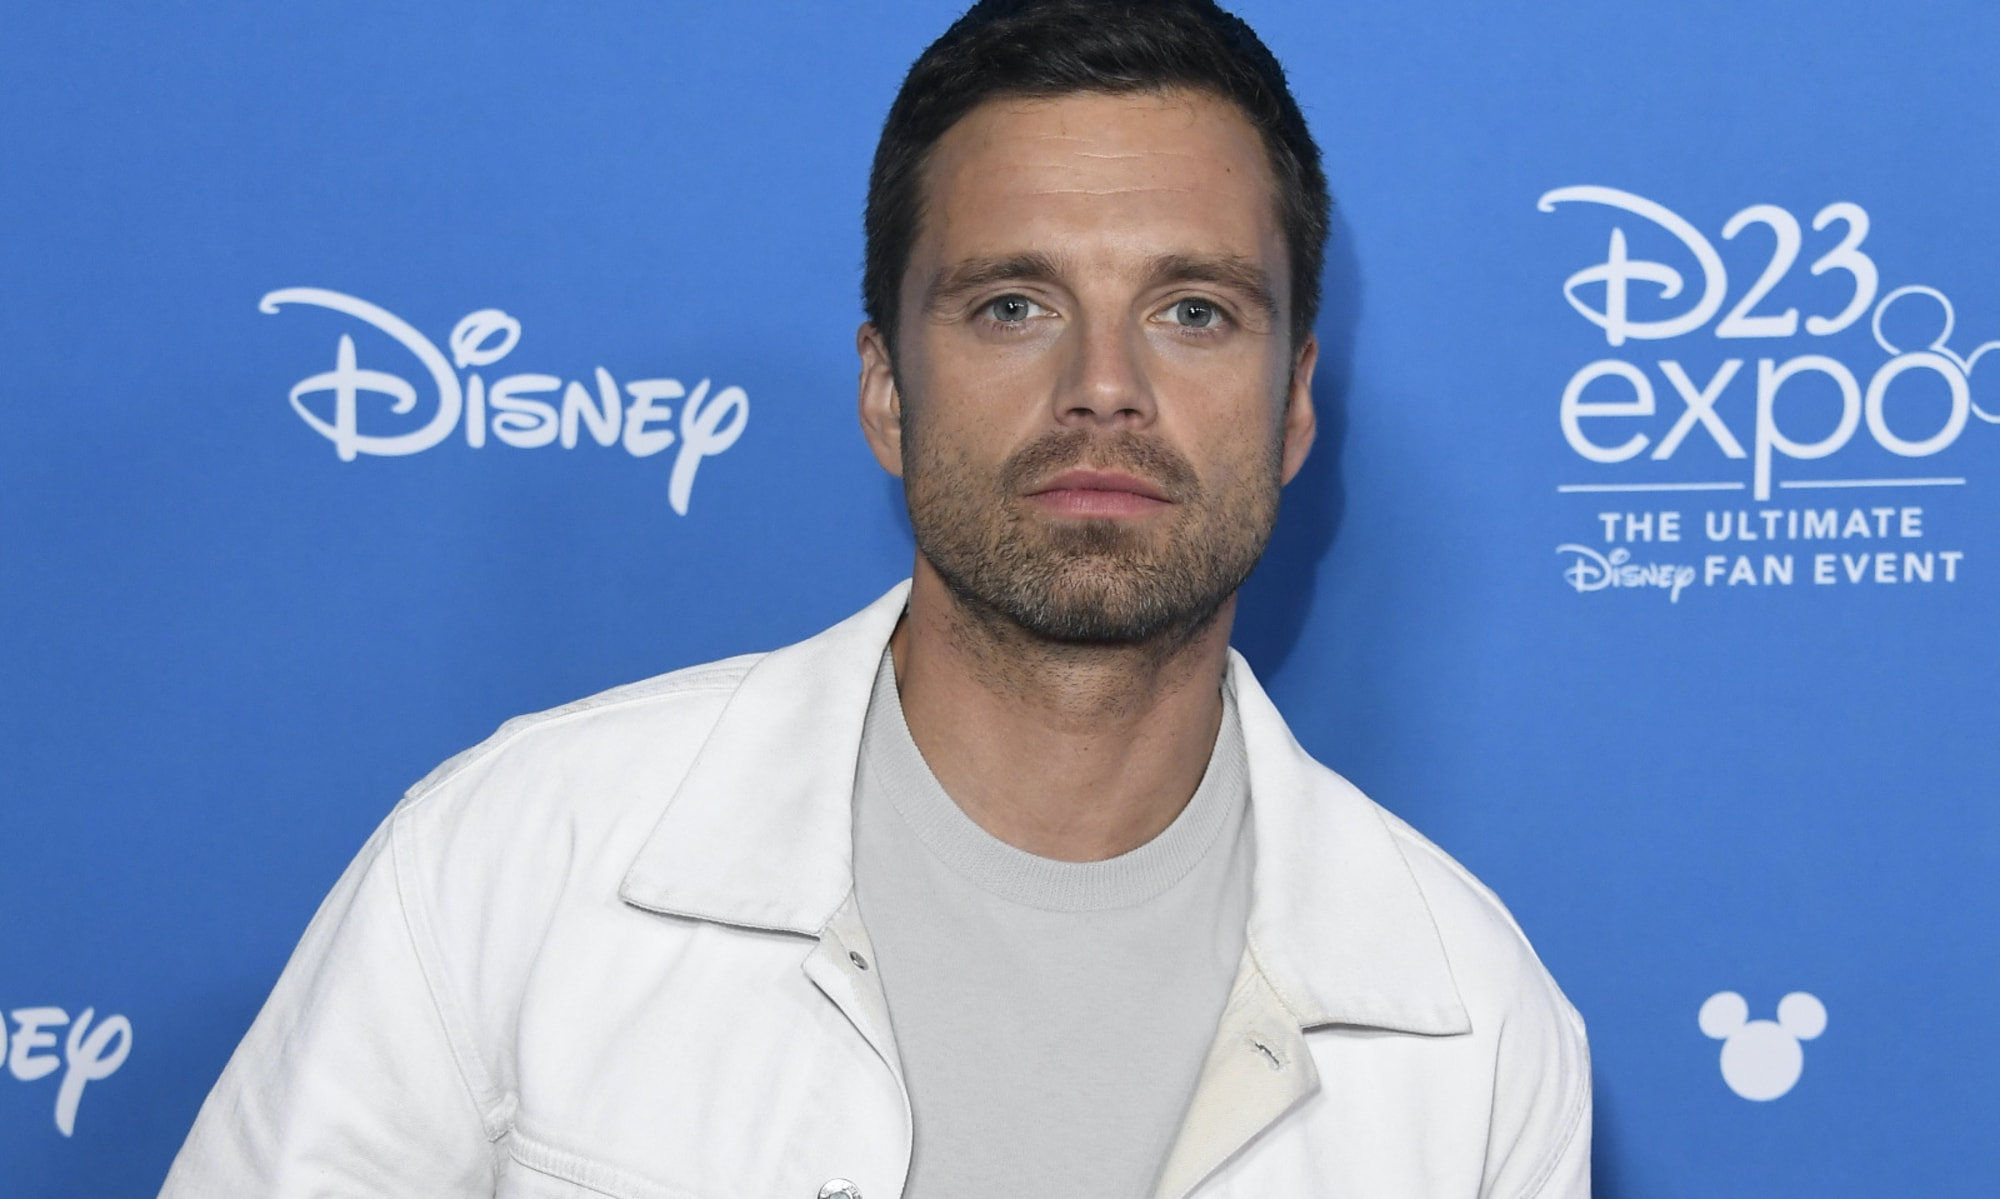 Star Wars: Sebastian Stan transforms into Luke Skywalker in stunning image